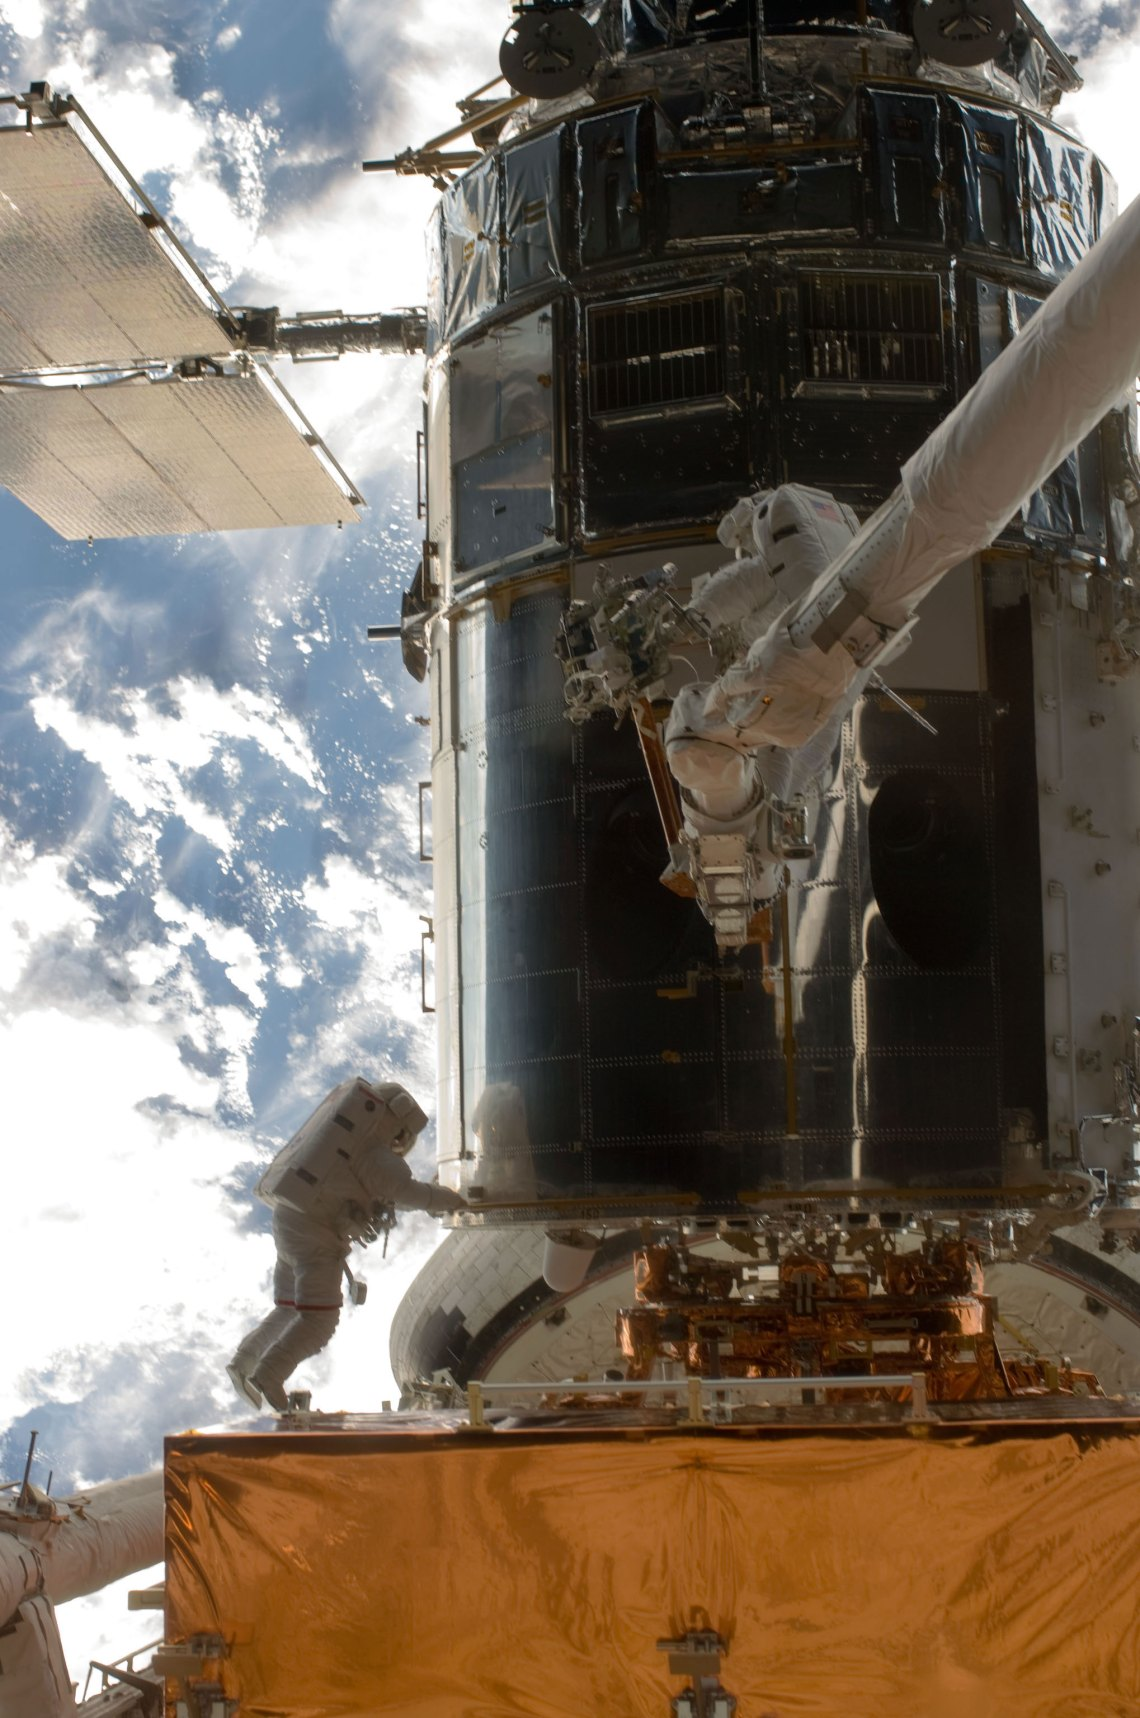 John Grunsfeld and  Andrew Feustel, perched  alone on the end  of the Atlantis'  RMS arm, conduct the first  of five STS-125 spacewalks  to repair and upgrade the  Hubble Space Telescope,  temporarily locked down  in the cargo bay of the  Earth-orbiting shuttle.   Credit: NASA